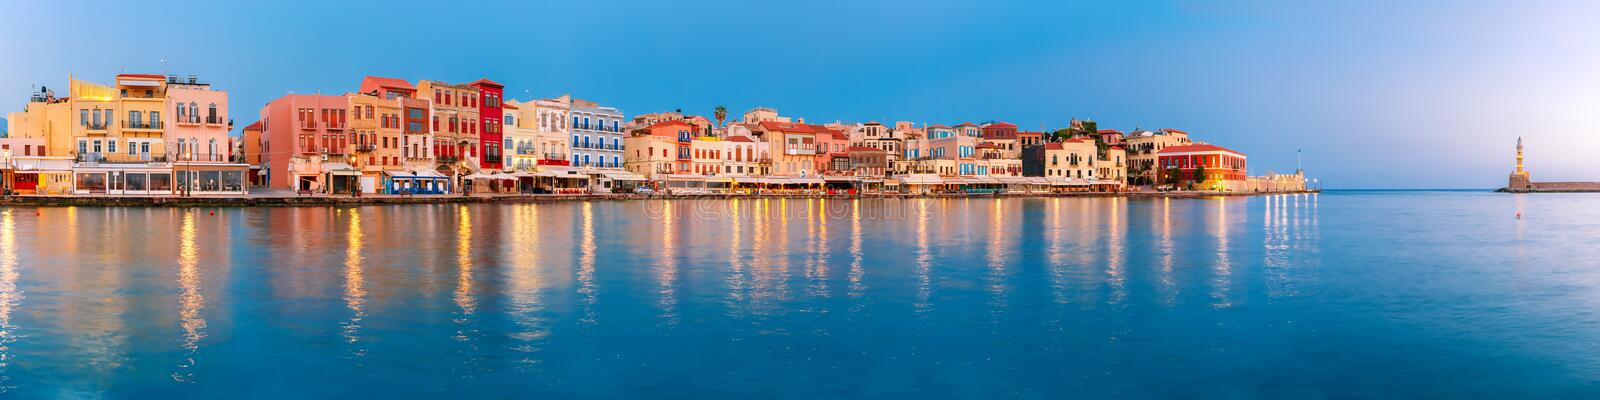 Old harbour at sunrise, Chania, Crete, Greece royalty free stock photos